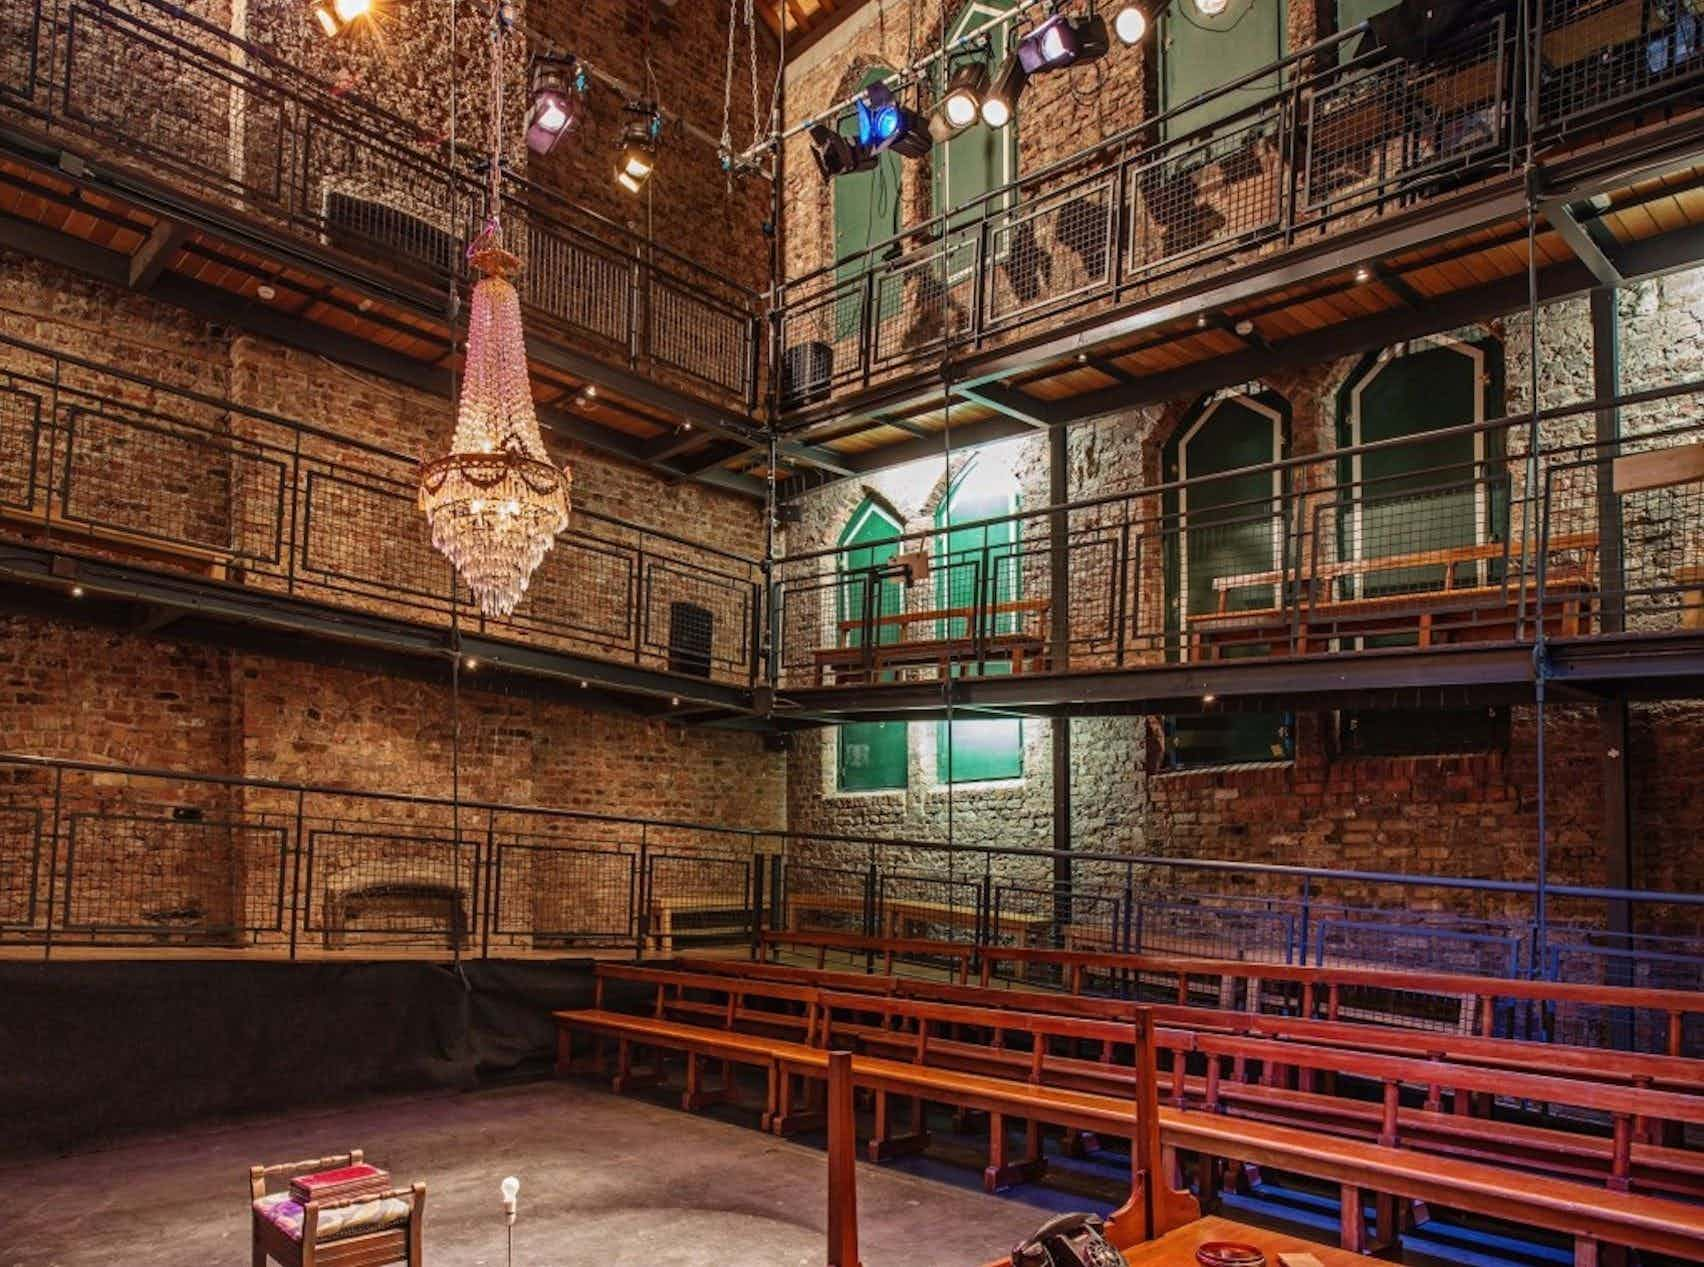 The Boys School, Smock Alley Theatre 1662